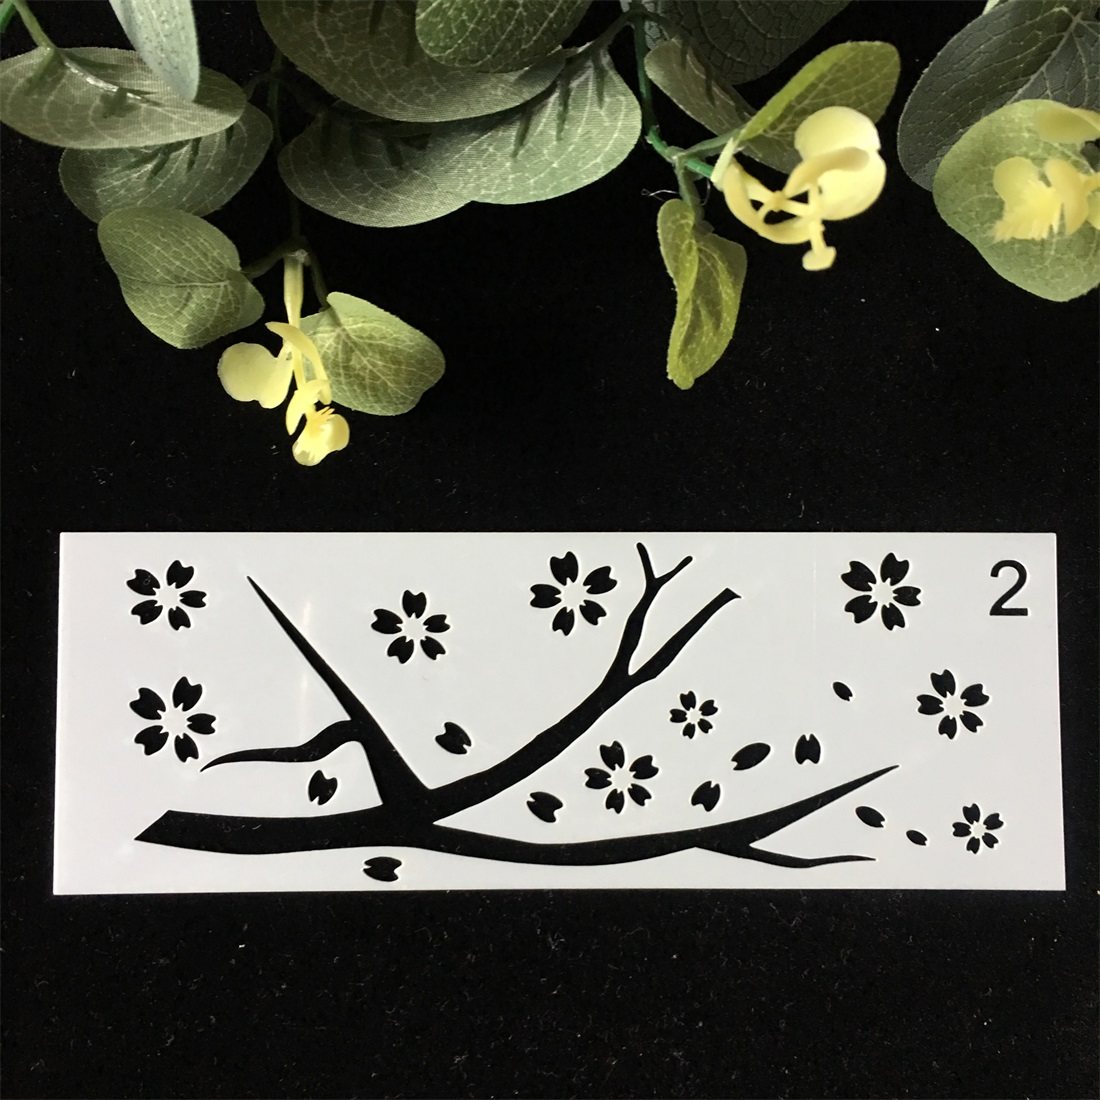 1Pcs 15x5cm Tree Plum DIY Craft Layering Stencils Wall Paint Scrapbook Stamp Embossing Album Decorative Card Template